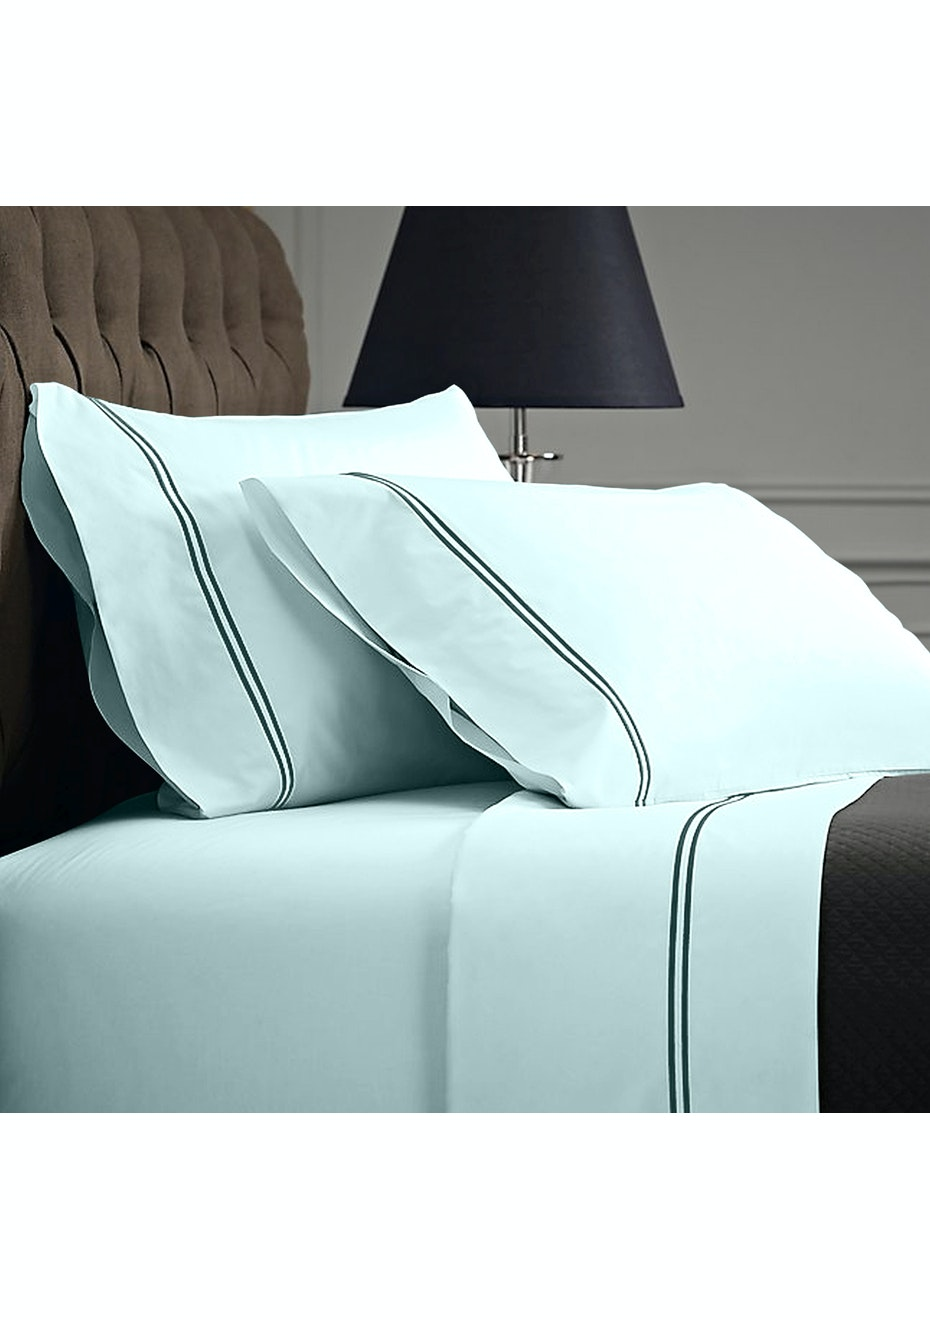 Style & Co 1000 Thread count Egyptian Cotton Hotel Collection Sorrento Sheet sets Double Duck Egg